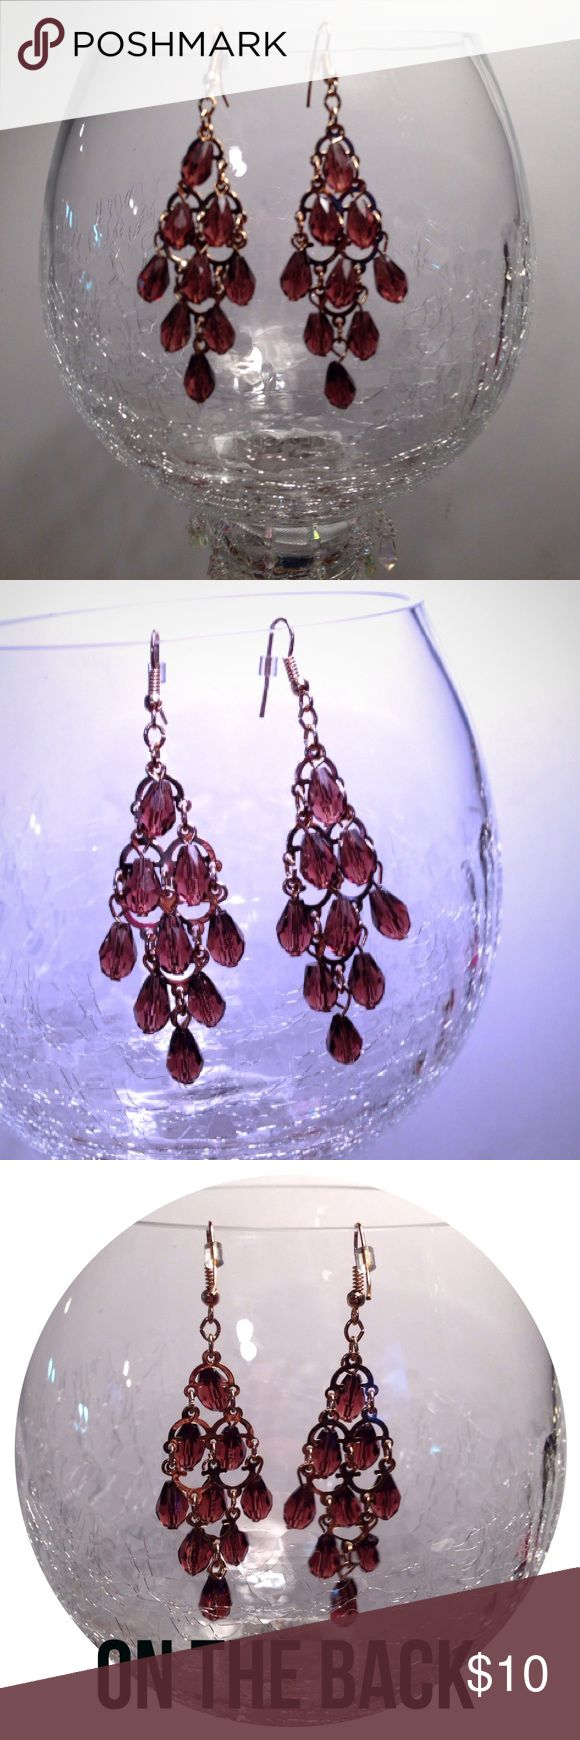 """NWT, Bronze Rose Gold Crystal Chandelier Earrings NWT, Adorable Gold chandelier earrings with layered bronze rose toned crystals. Lightweight long earrings are 3"""" long & 1"""" wide. Comes with 2 clear security backs on posts. Brand New with black velvet  jewelry bag, (shown in last picture). Price Firm Unless Bundled for an additional 10% discount. boutique Jewelry Earrings"""